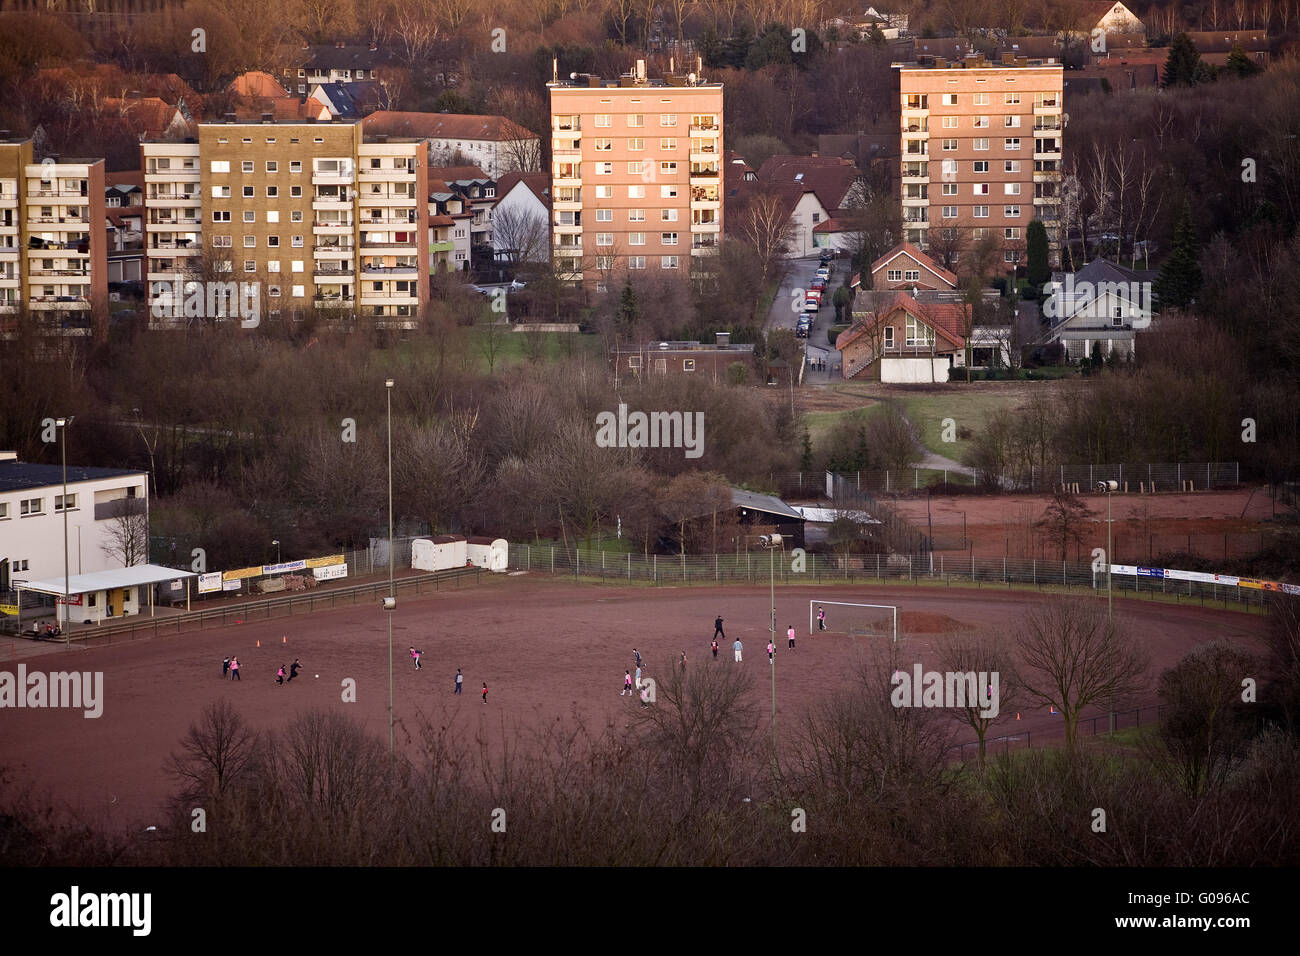 Soccer field and Housing development in Bottrop. - Stock Image